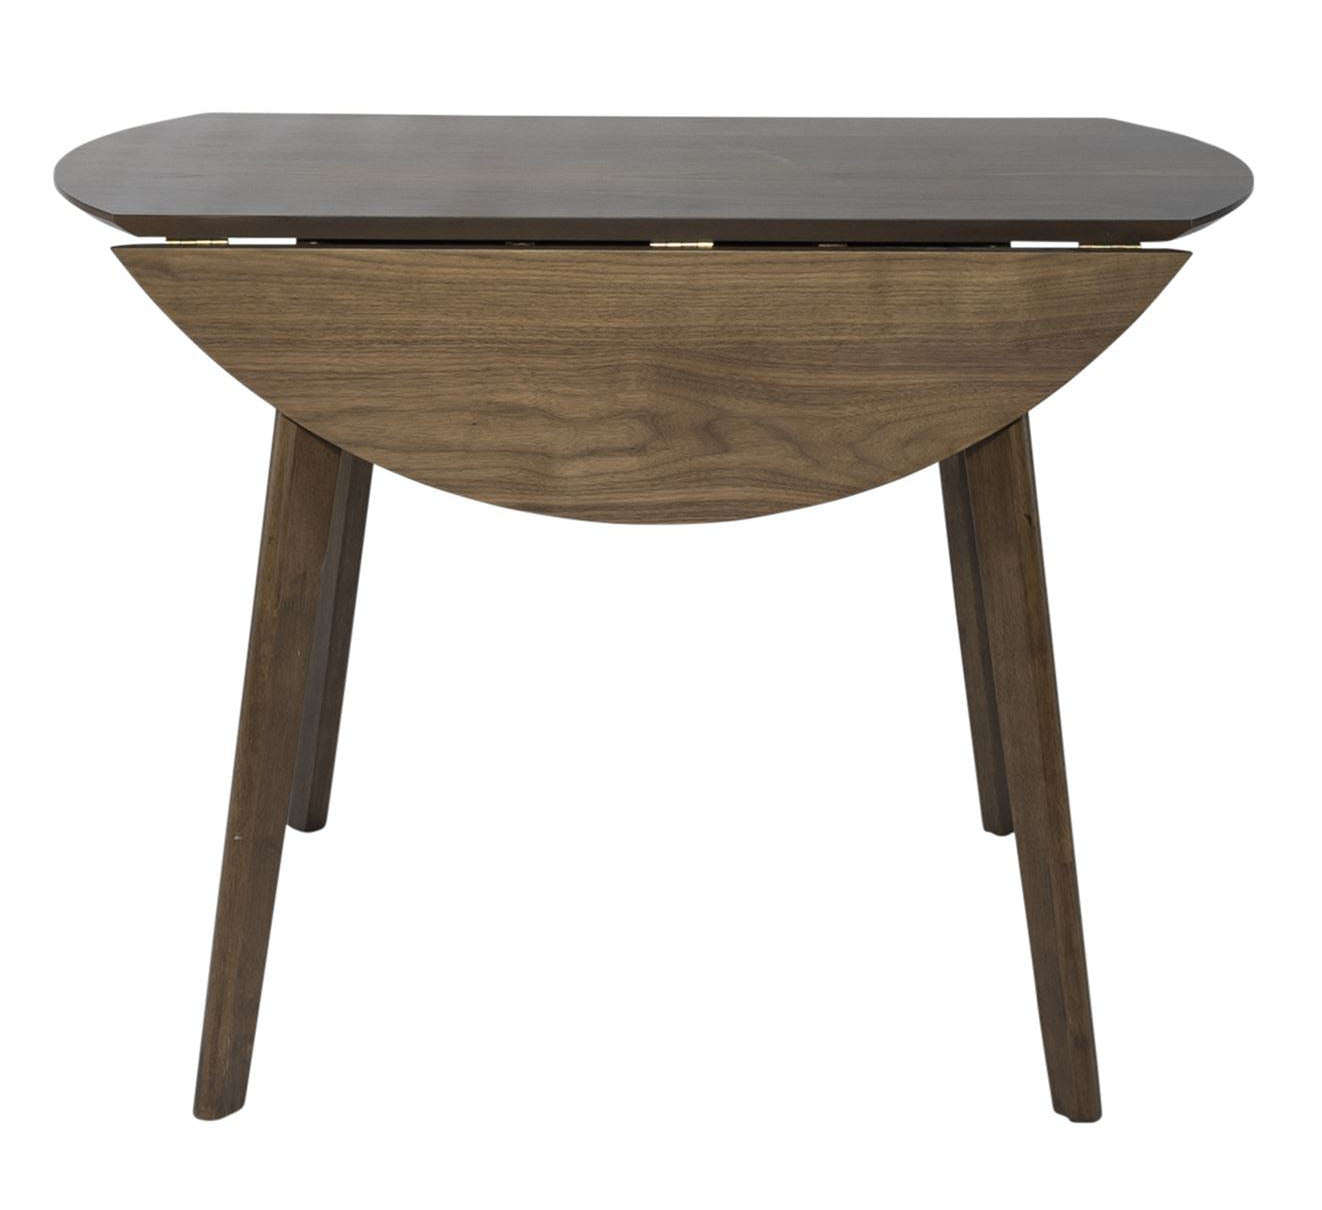 Space Savers Drop Leaf Dining Table - MJM Furniture